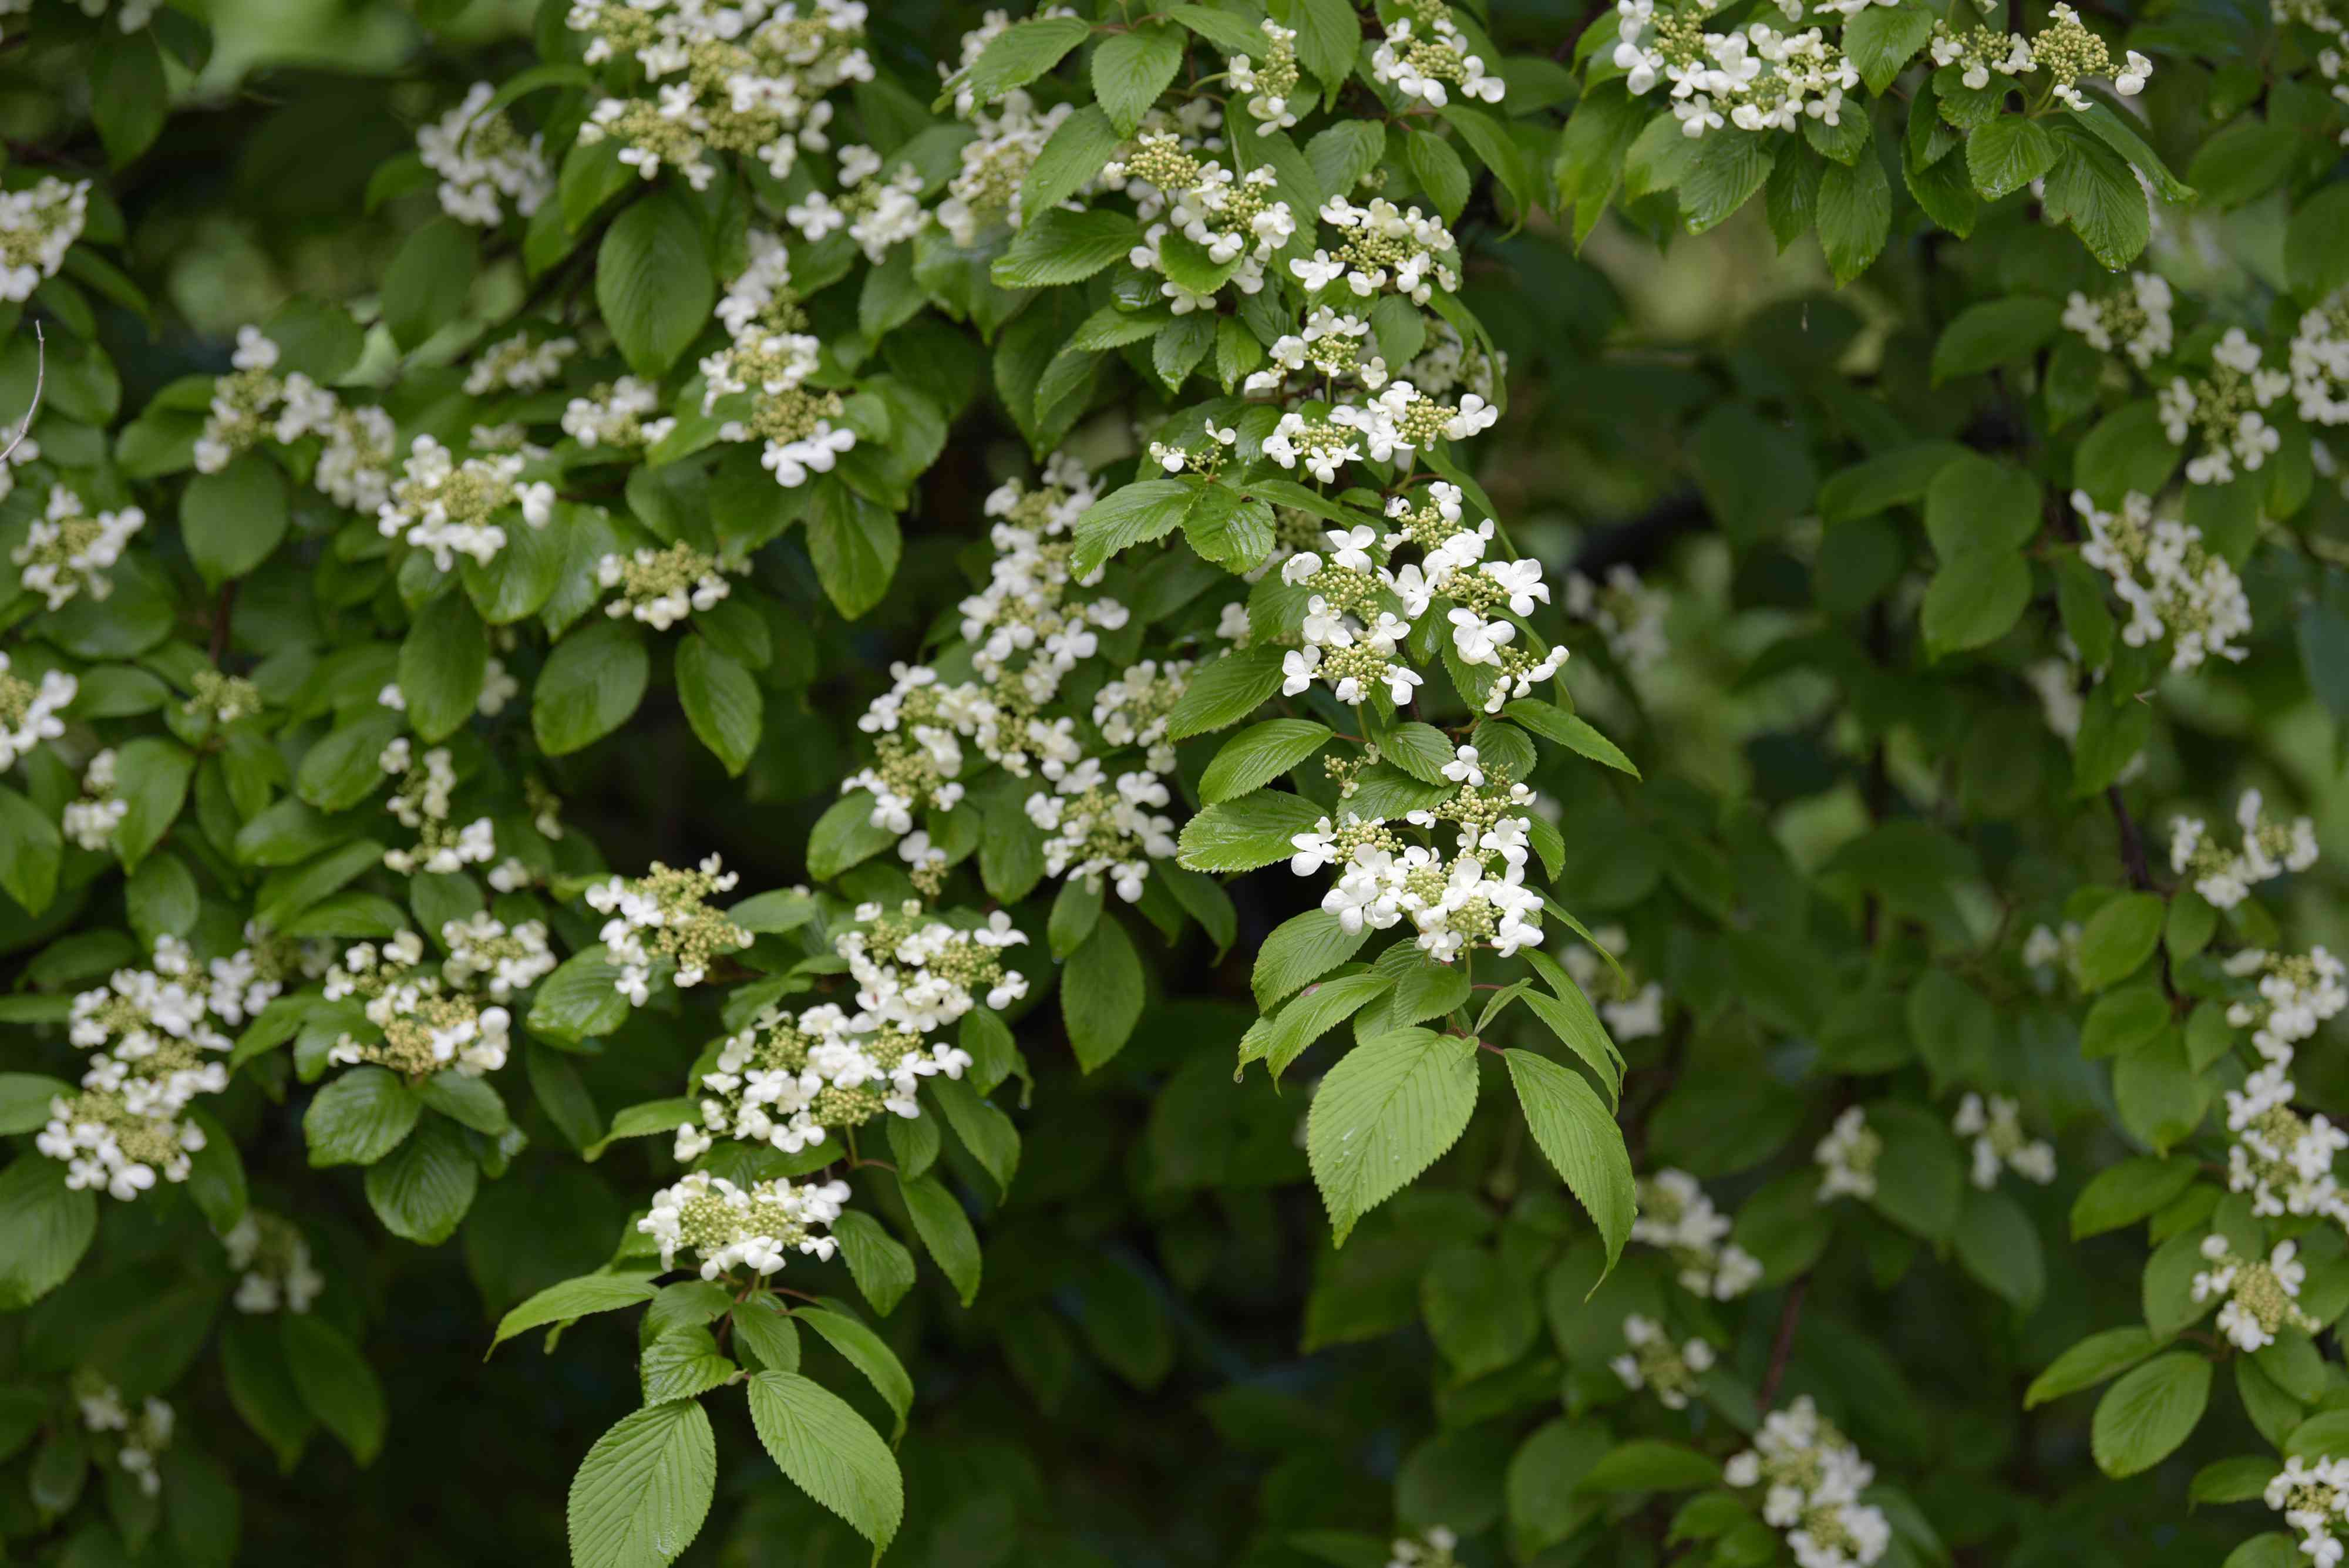 Doublefile viburnum shrub branches with oval-shaped leaves and small white flower clusters